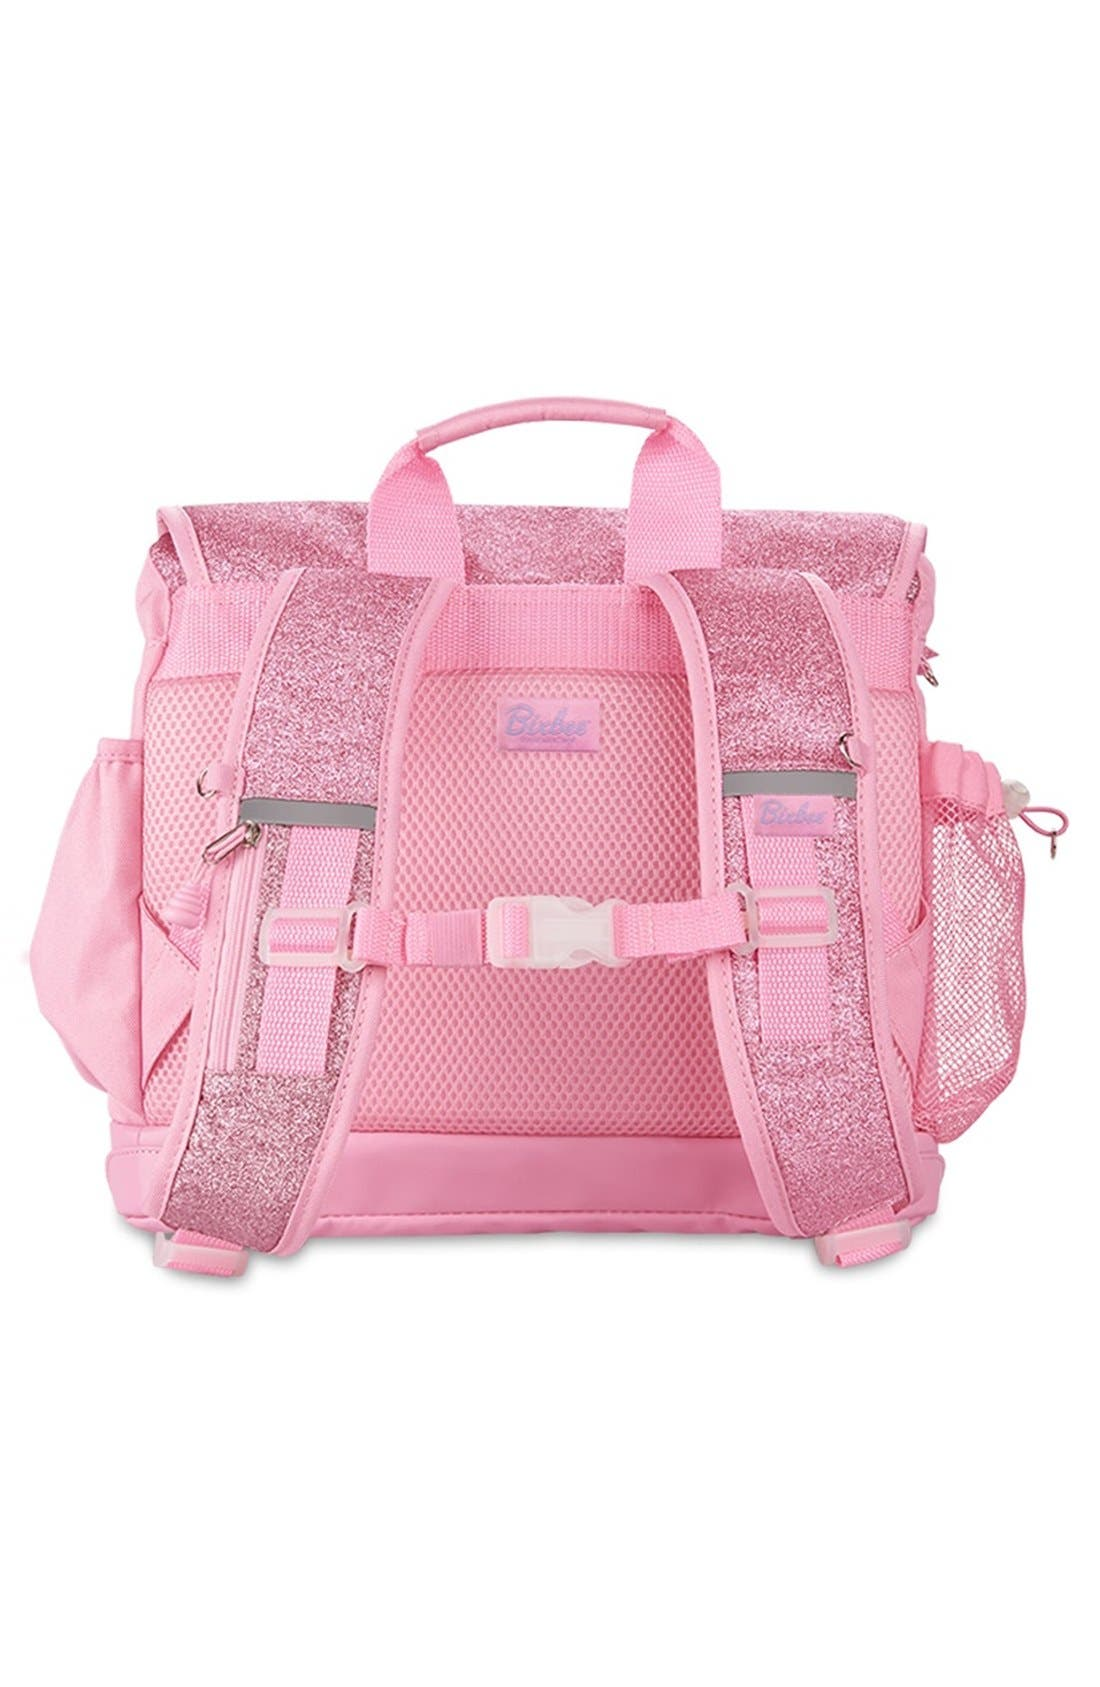 'Medium Sparkalicious' Backpack,                             Alternate thumbnail 2, color,                             Pink